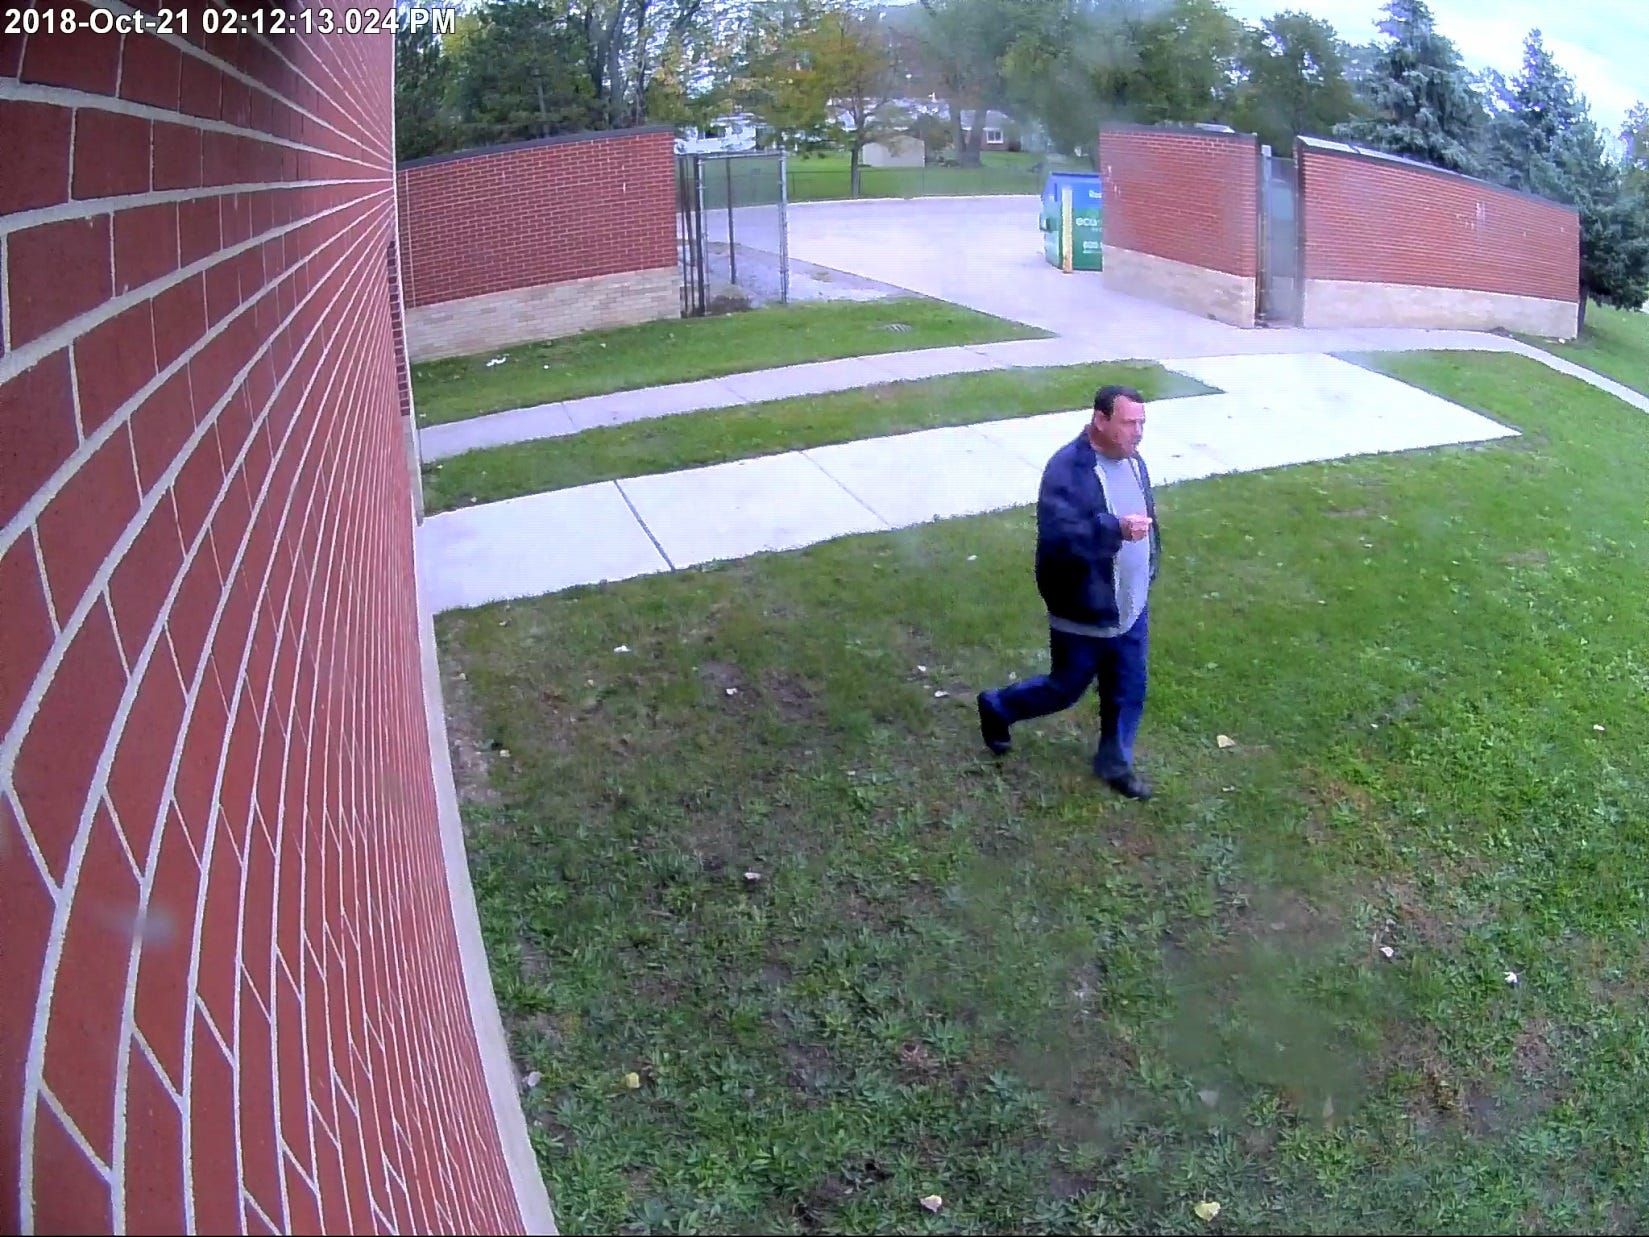 Man returns bike, turns himself in after photos released of theft from Power Middle School